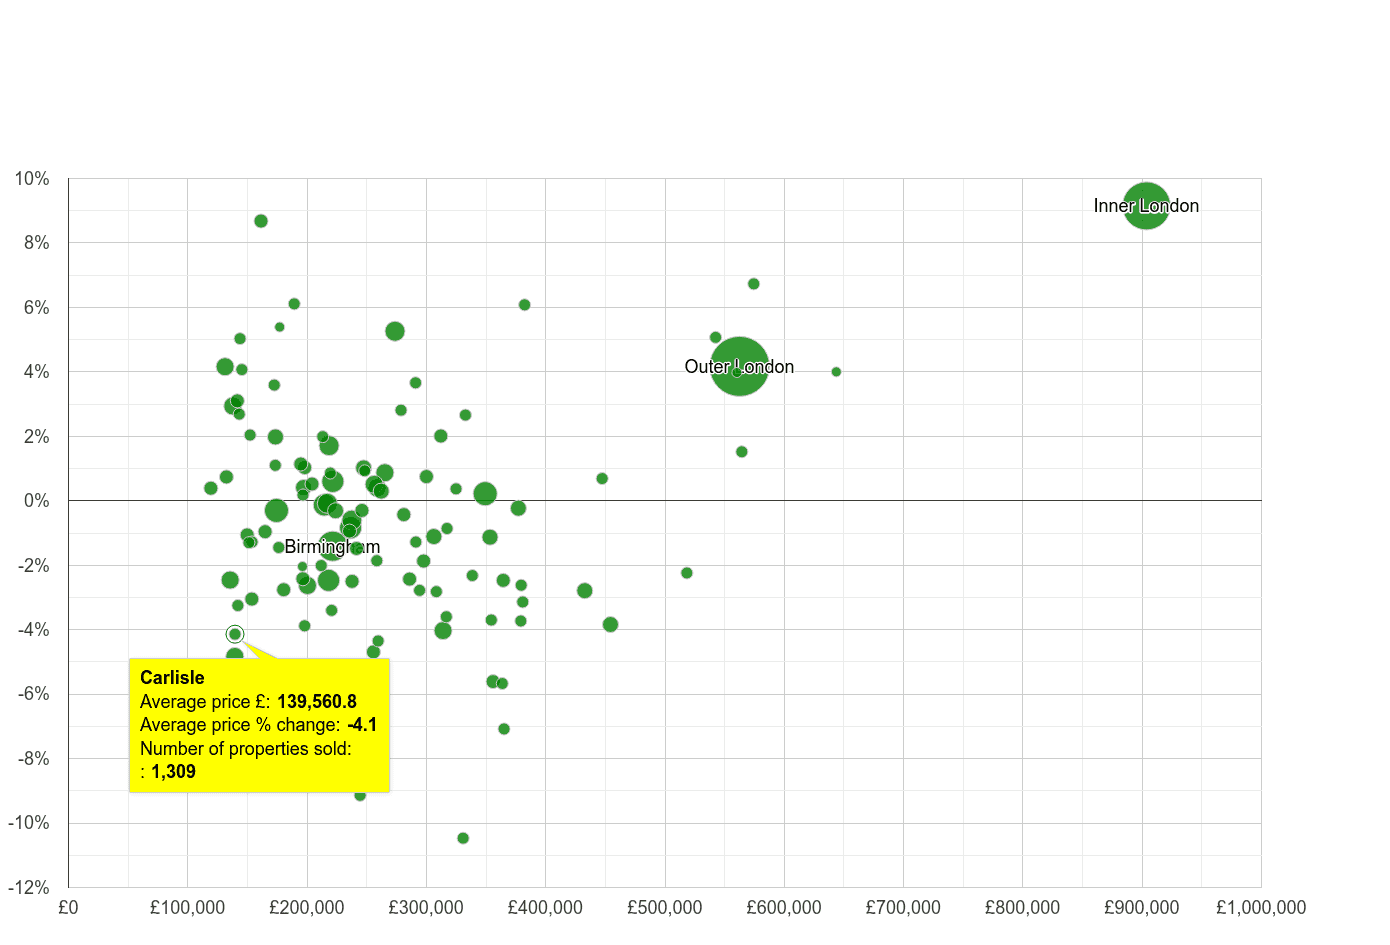 Carlisle house prices compared to other cities